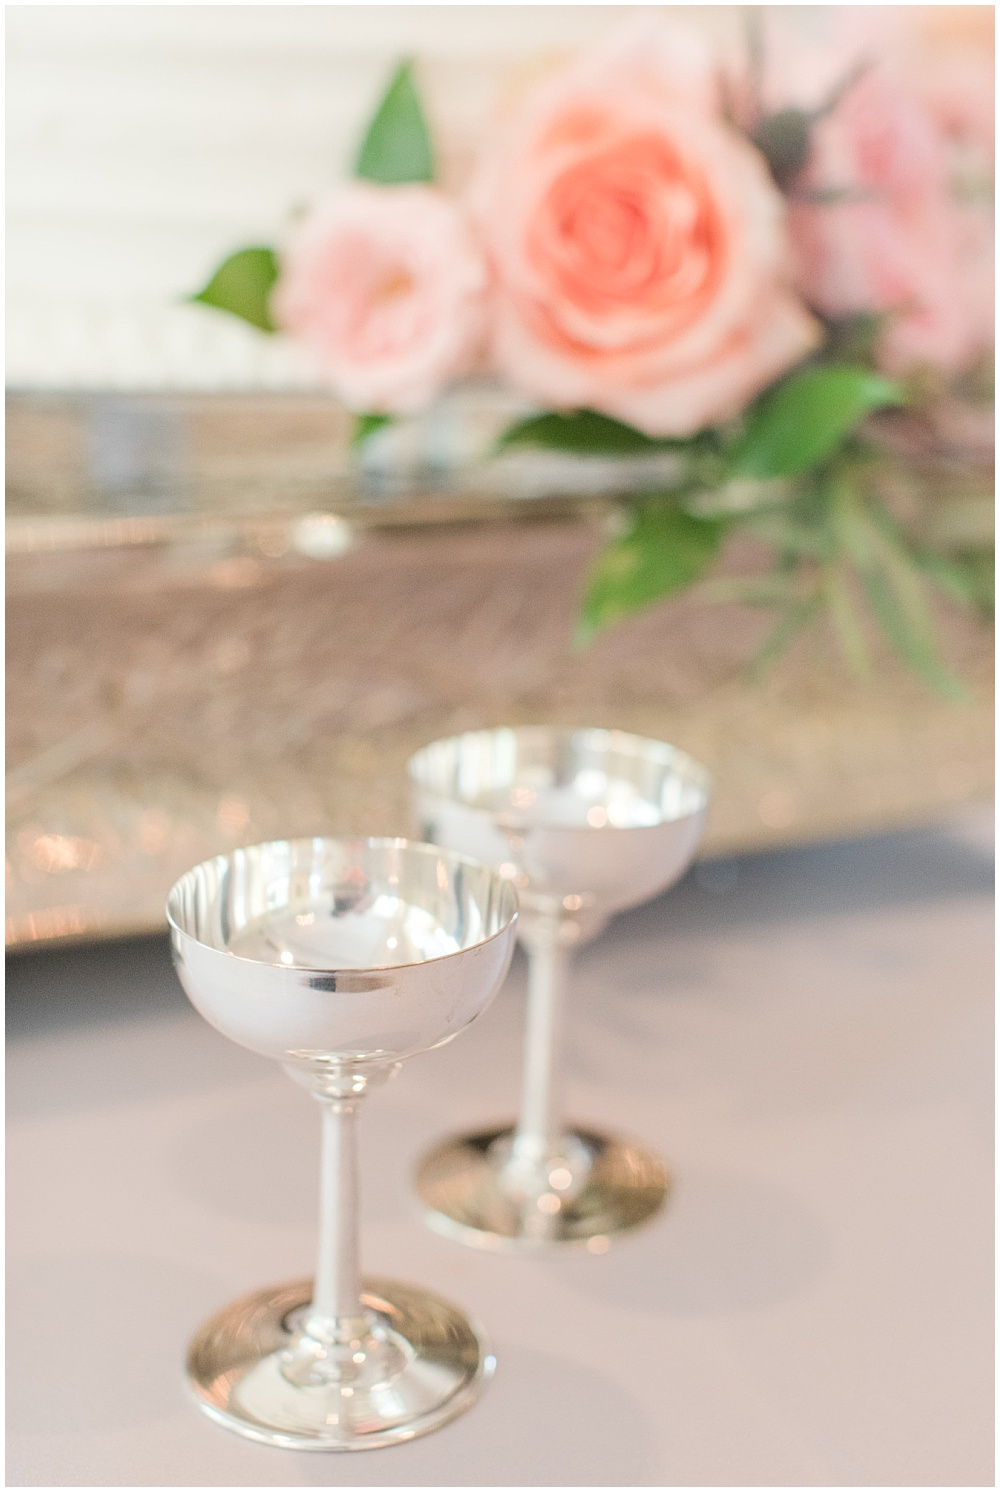 Antique silver champagne flutes | Sami Renee Photography + Jessica Dum Wedding Coordination